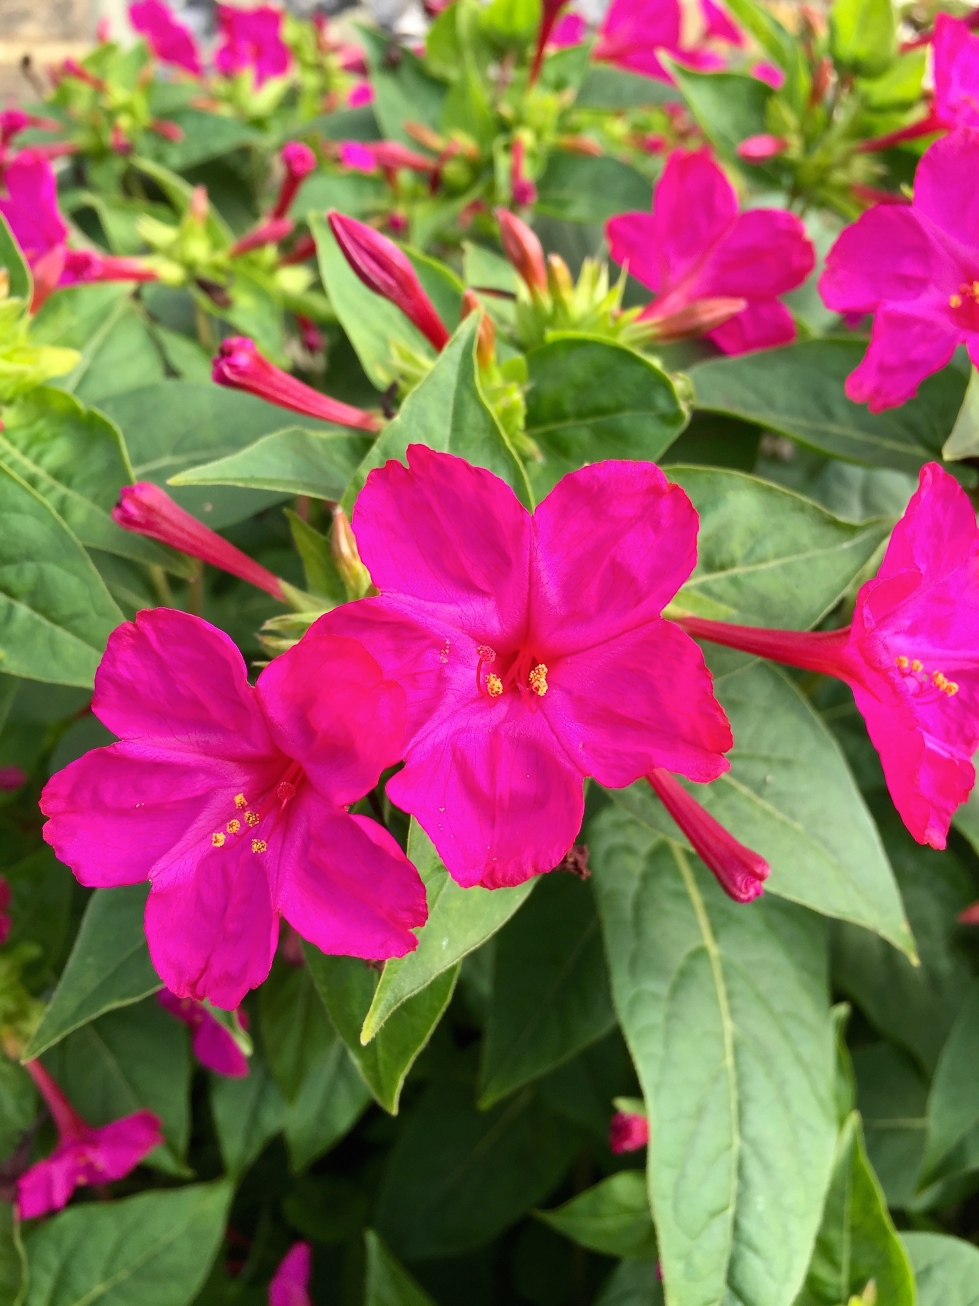 Mirabilis jalapa, Marvel of Peru, October 2015